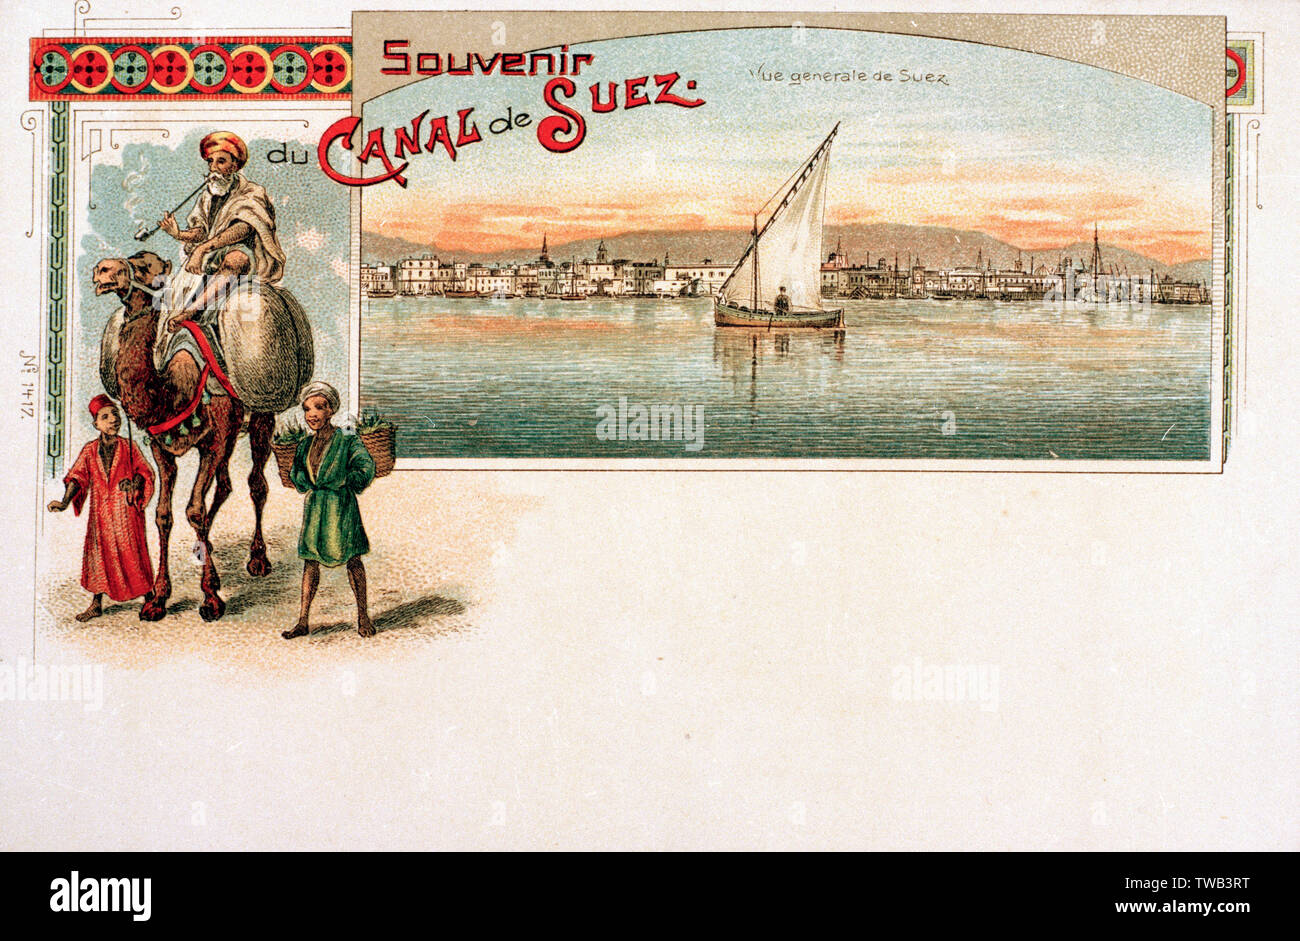 Souvenir postcard of the Suez Canal, Egypt.      Date: circa 1900s Stock Photo